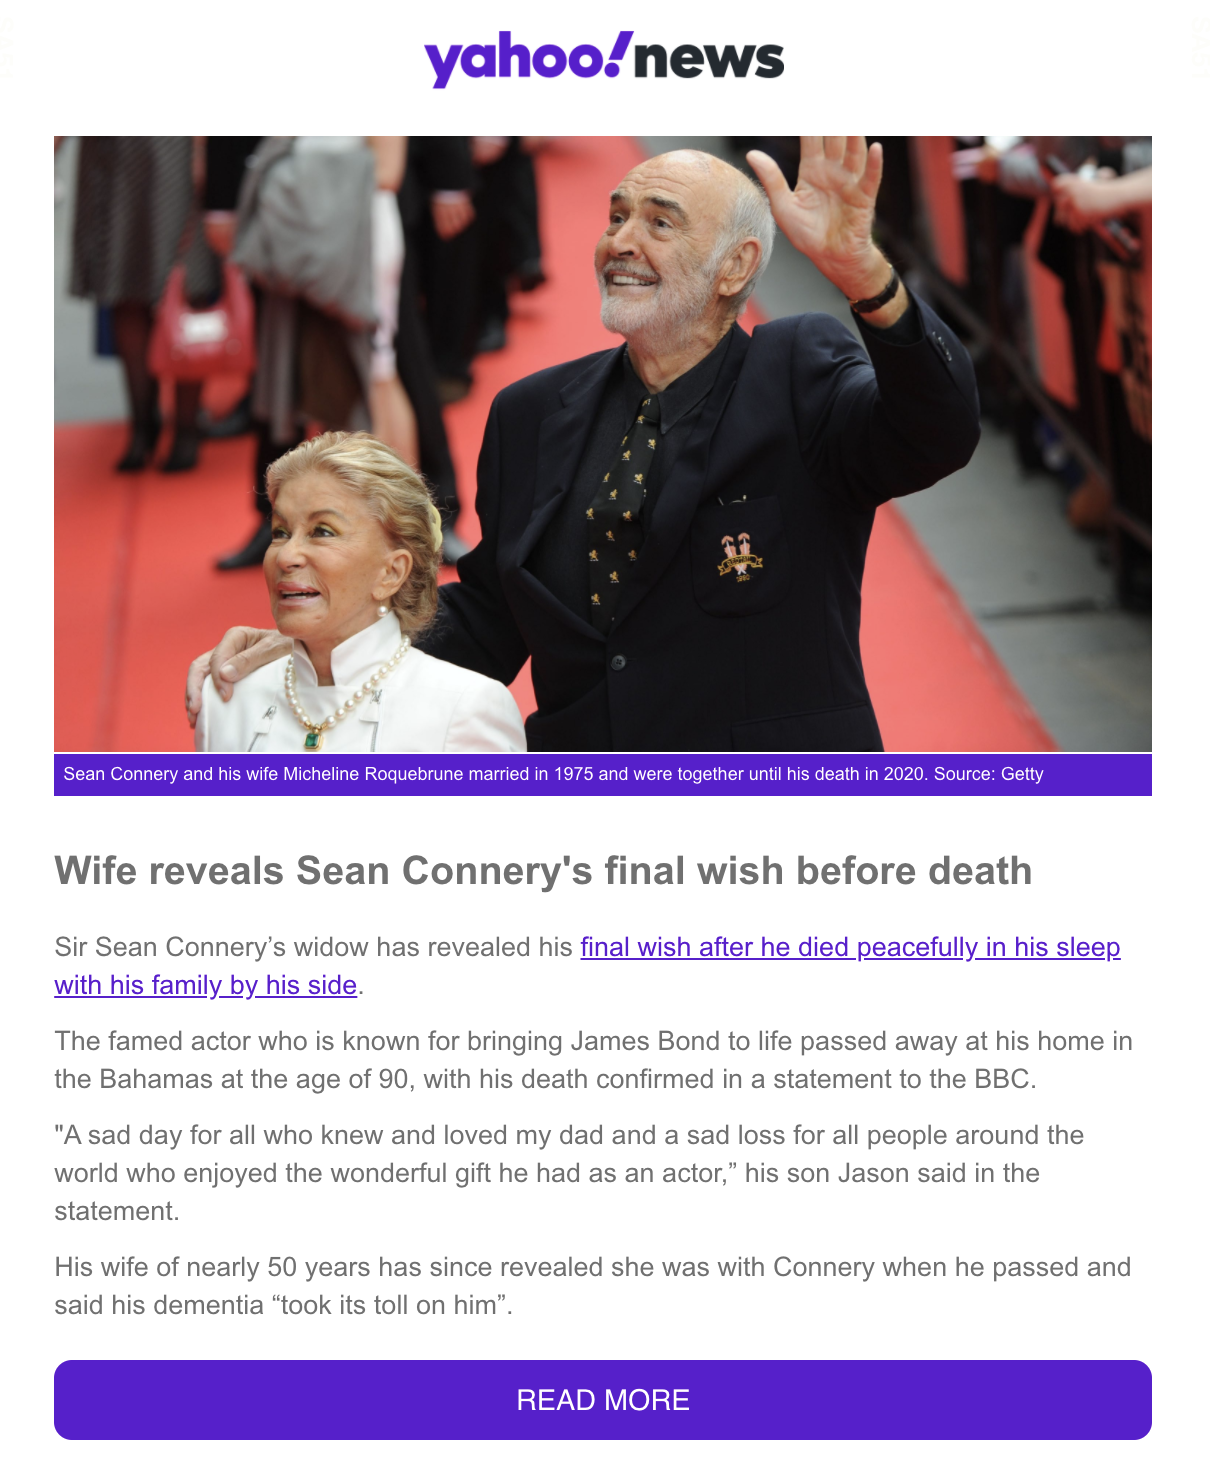 [SCAM OF THE WEEK] Sean Connery's Final Wish is Revealed